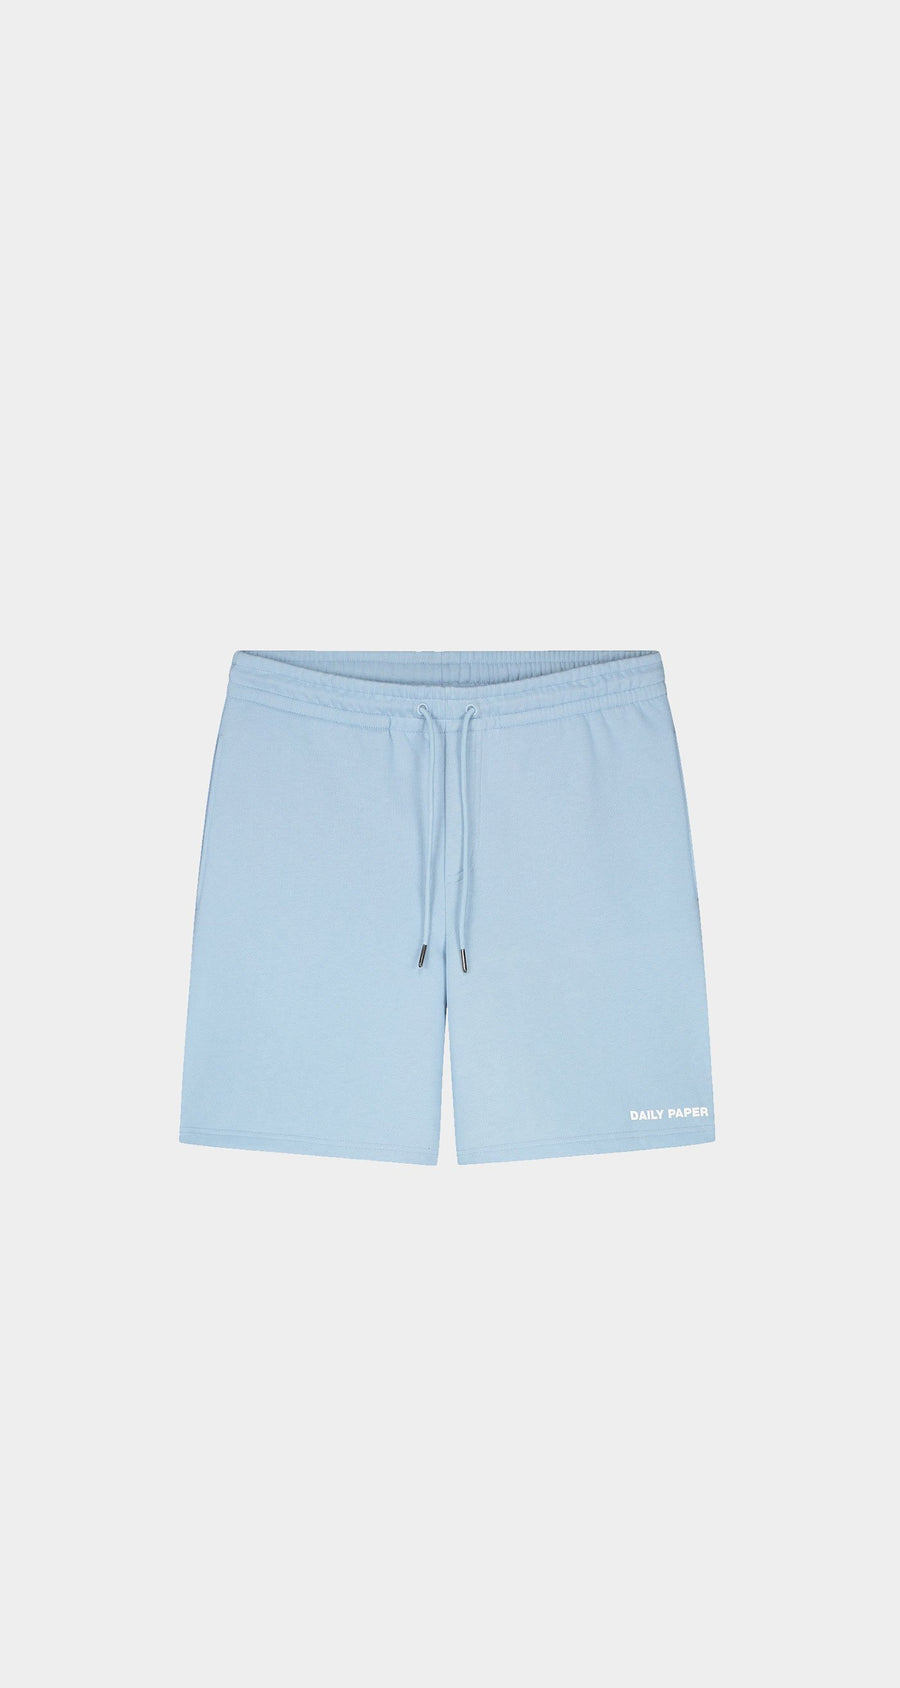 Daily Paper - Chambray Blue Refarid Shorts - Men Front